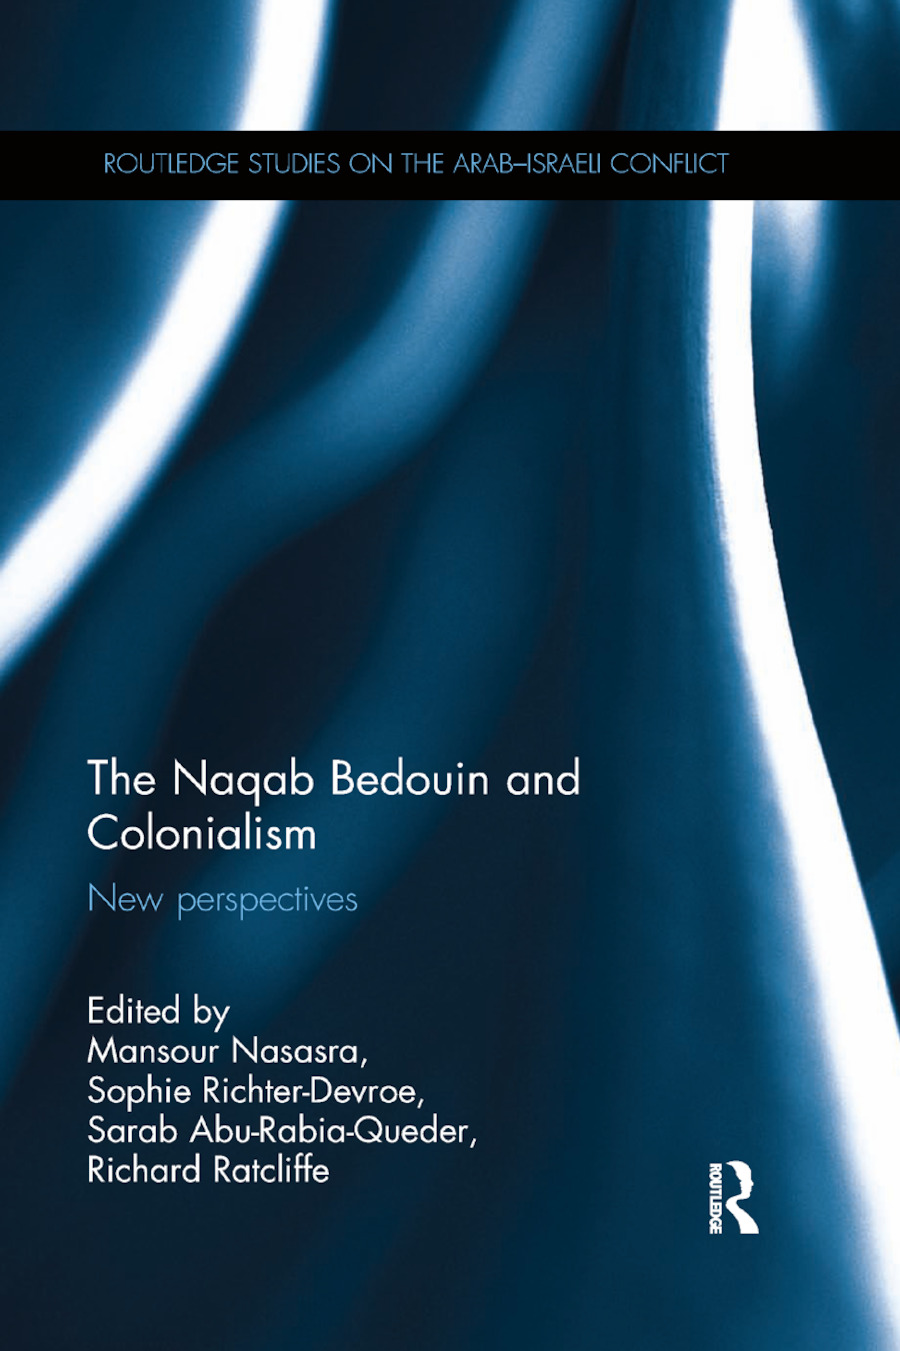 The Naqab Bedouin and Colonialism: New Perspectives book cover